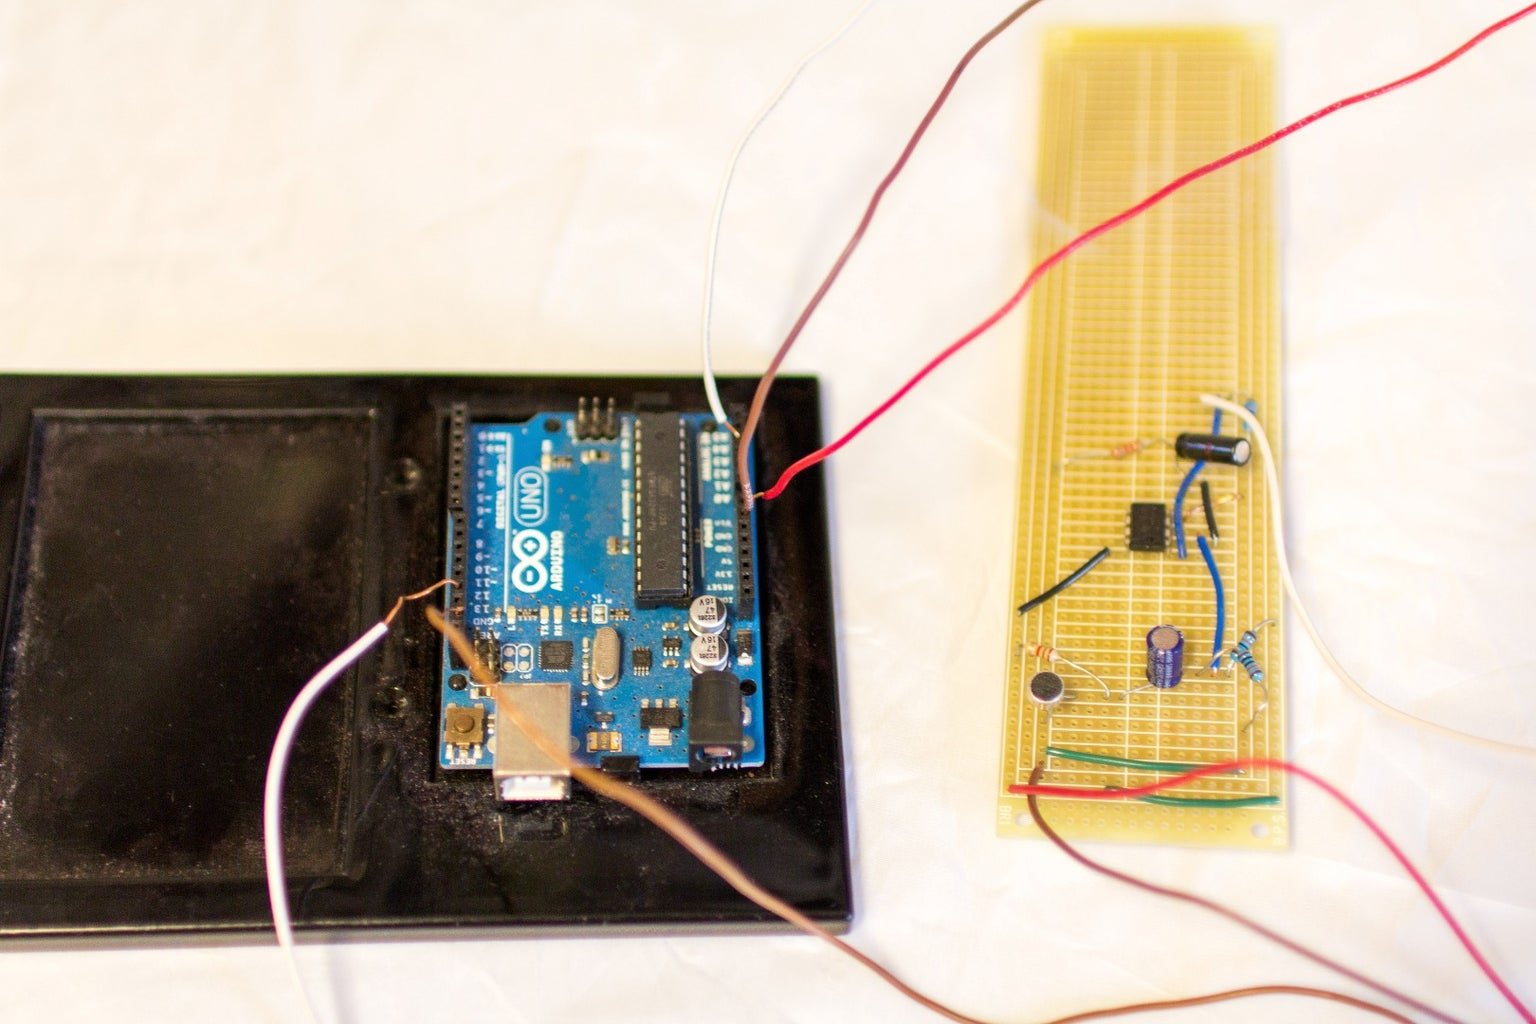 5. the Arduino/Automation